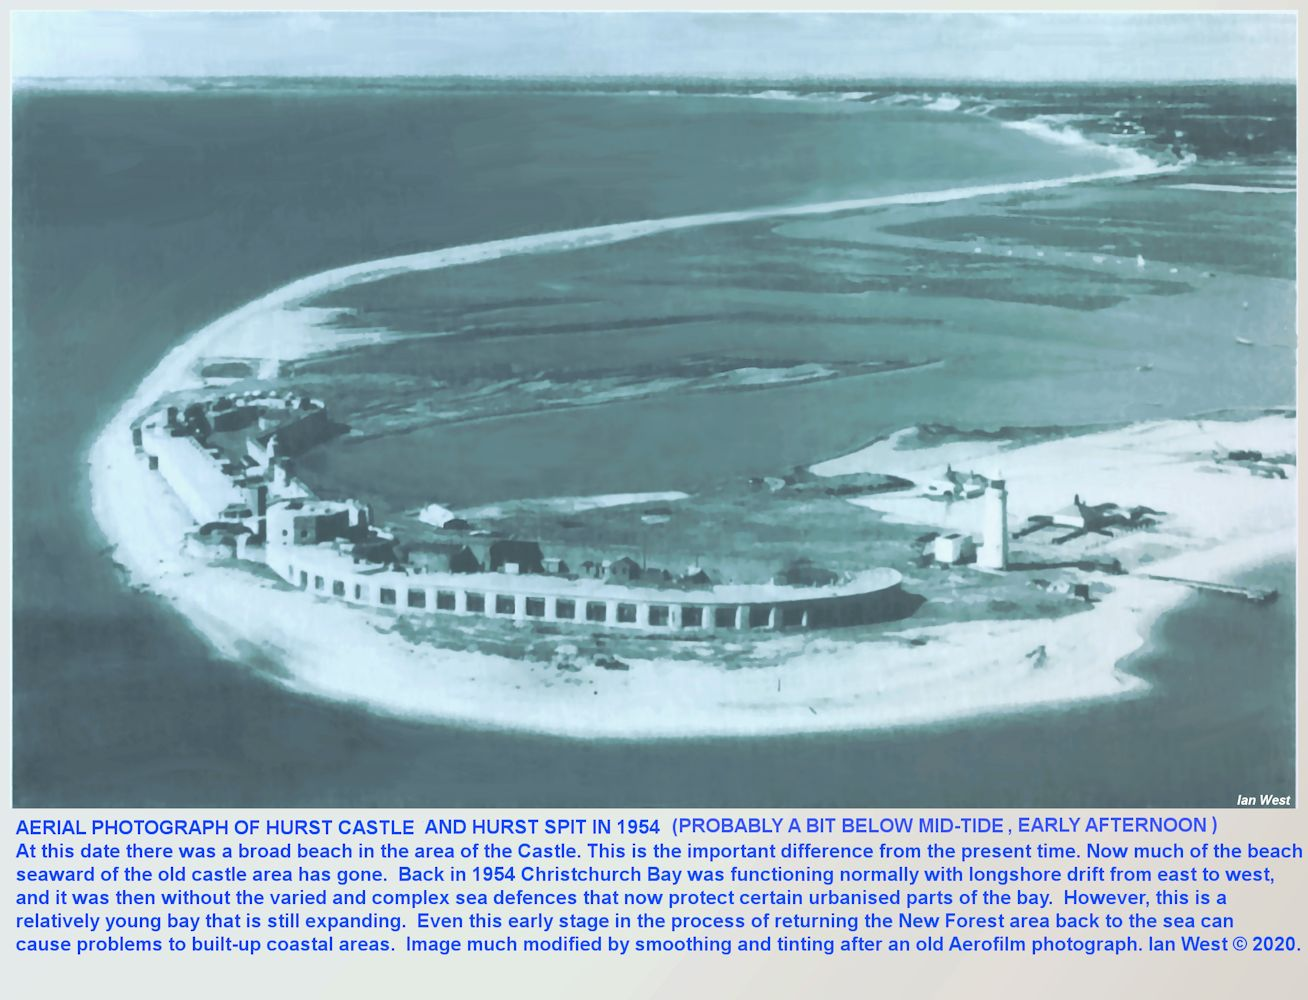 An Old aerial photograph of Hurst Spit and Hurst Cstle, Hampshire, in 1954, modified